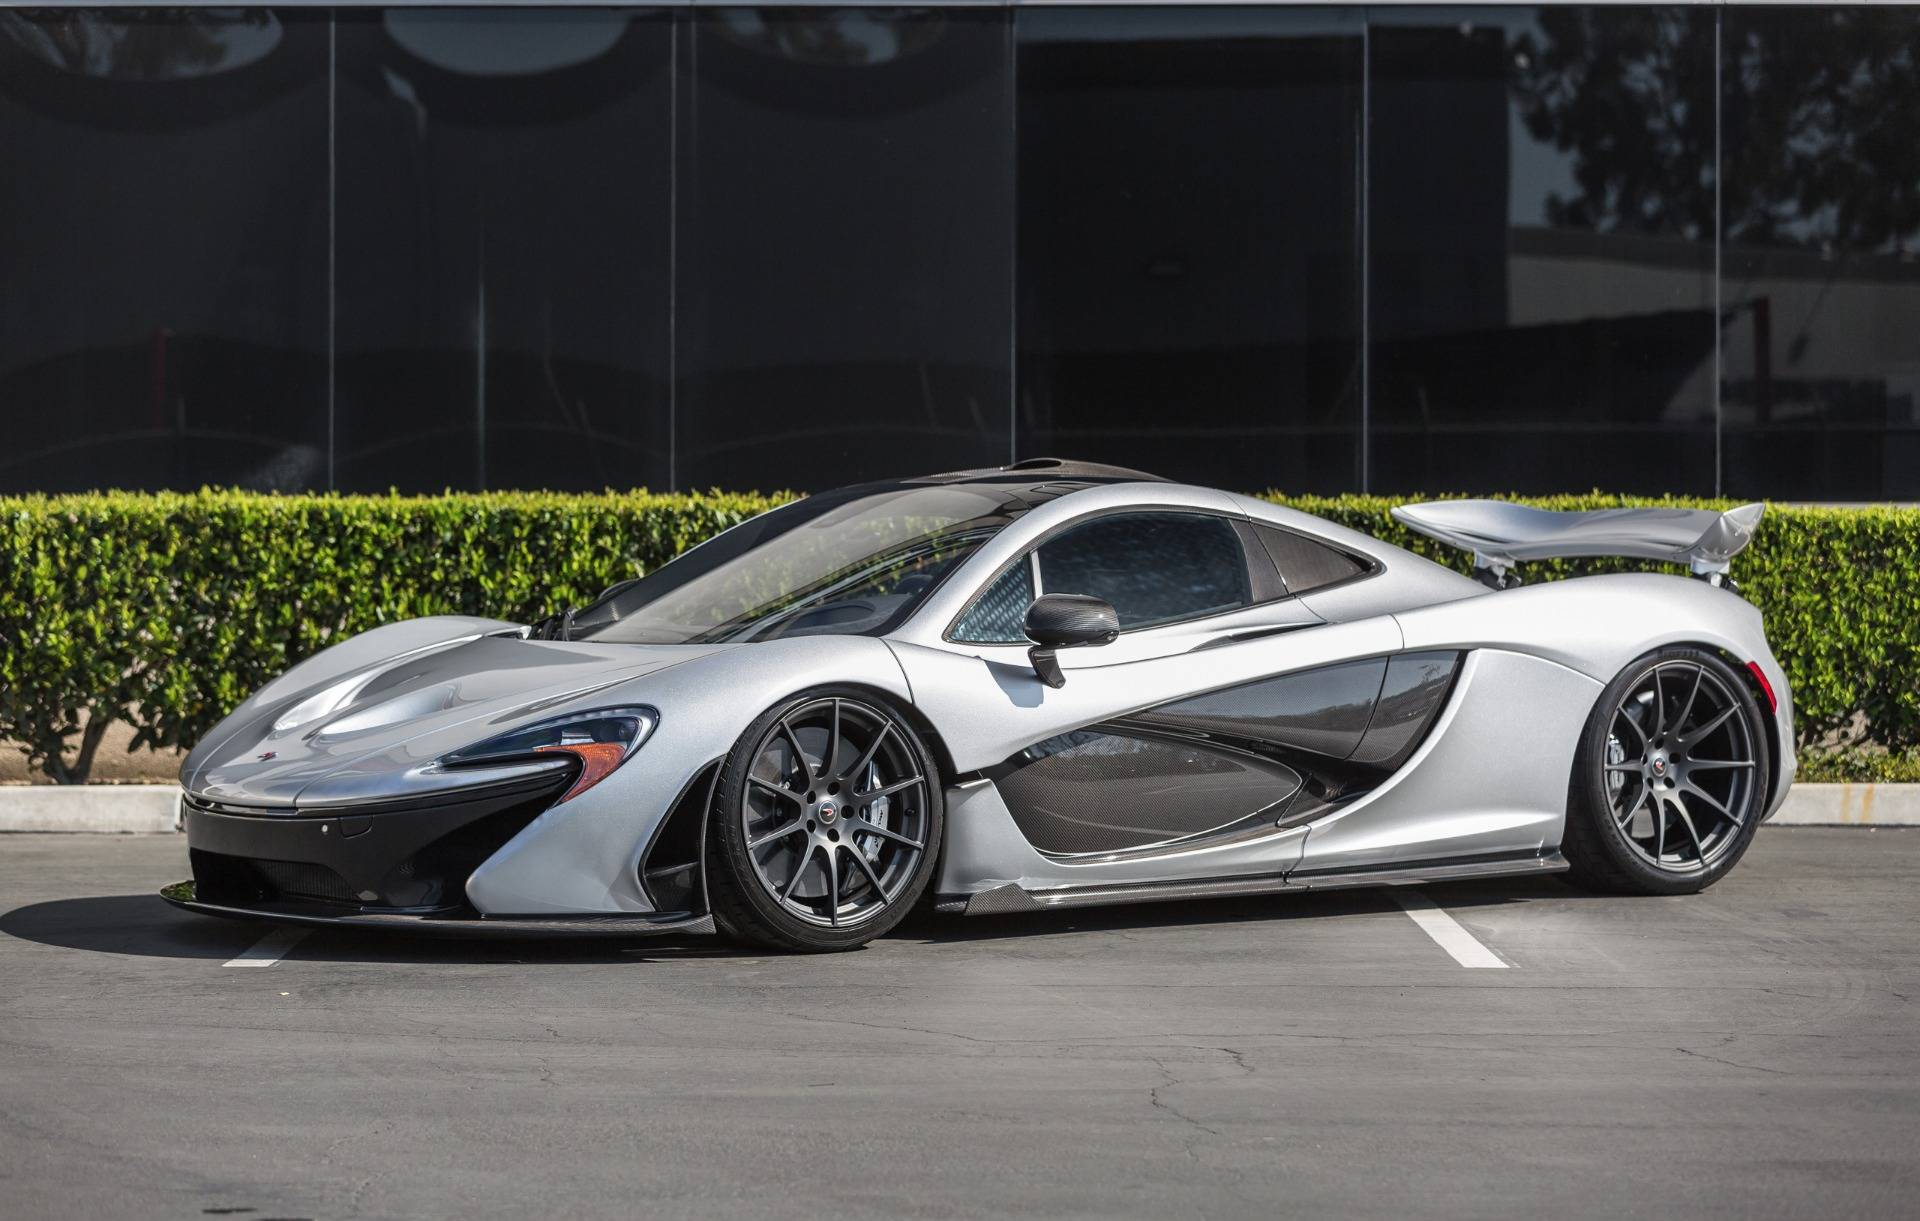 Supernova Silver McLaren P1 for Sale in the US at $2,399,000 - GTspirit